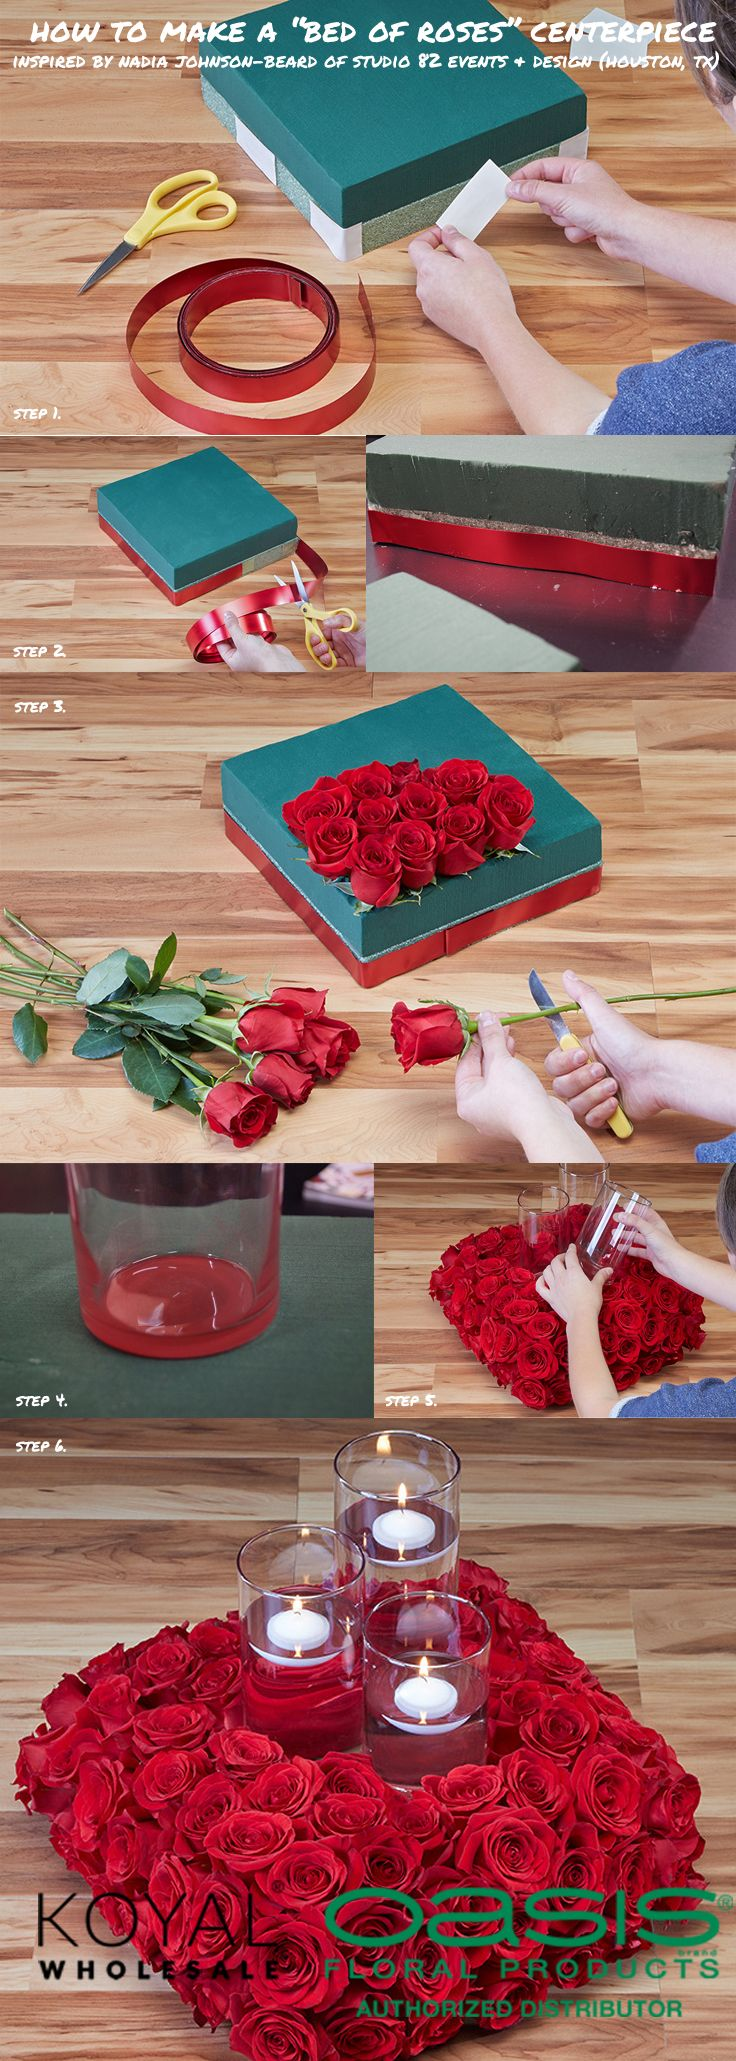 Matrimonio Bed Of Roses : Wedding diy bed of roses floating candle centerpiece design my